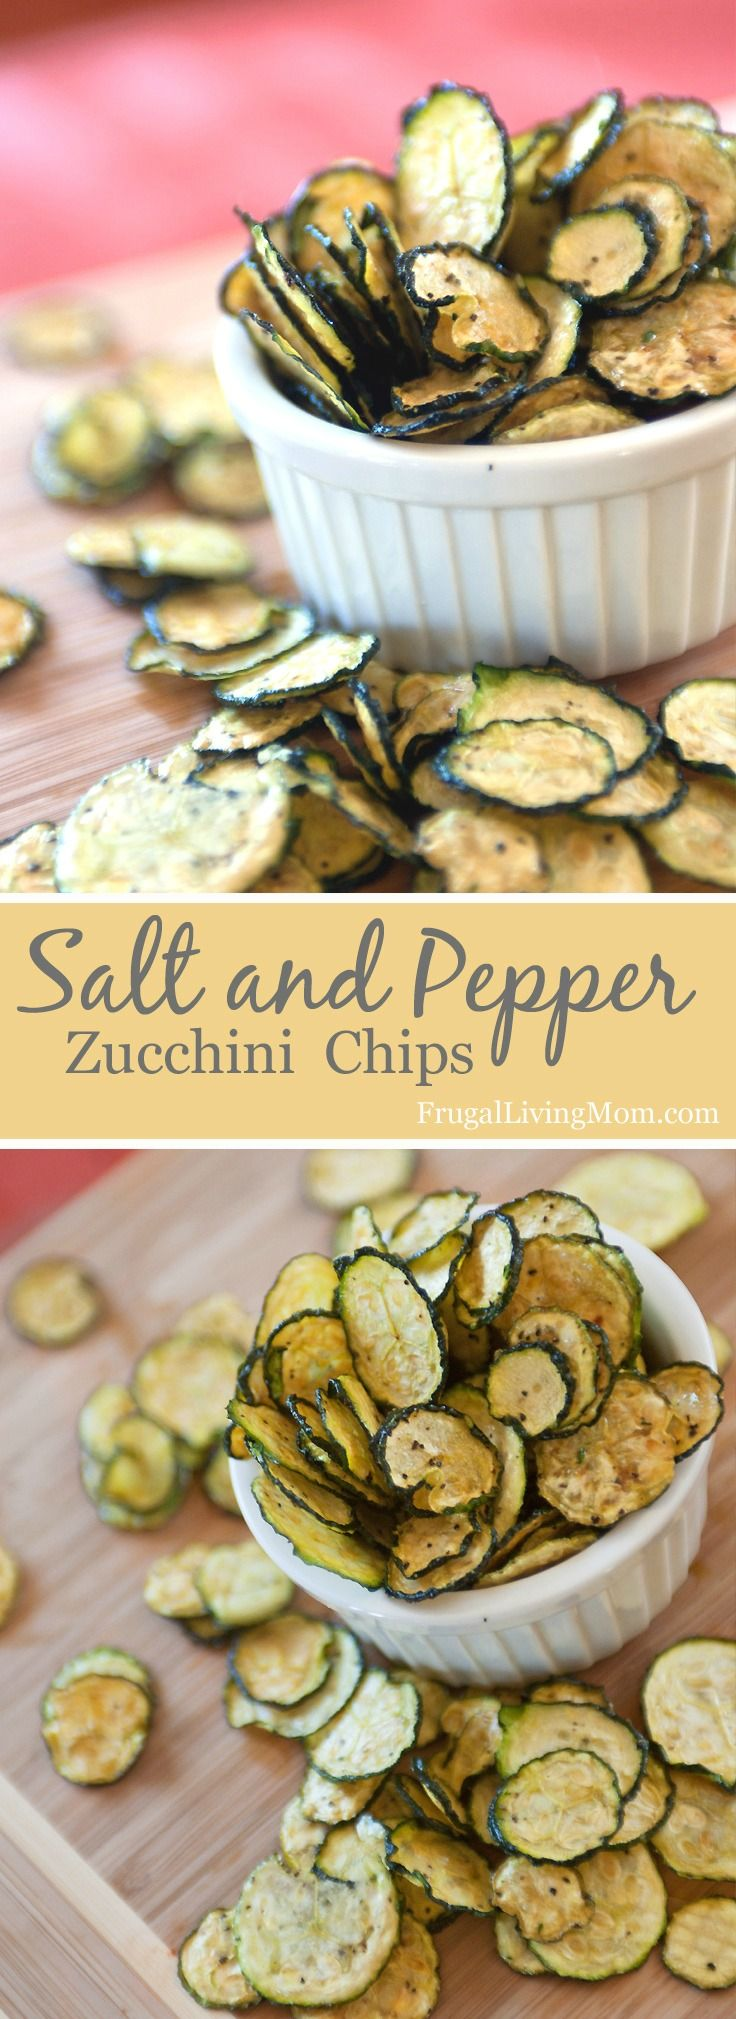 Salt and Pepper Zucchini Chips!  Super yummy and #healthy.  You can make these with a dehydrator or in the oven